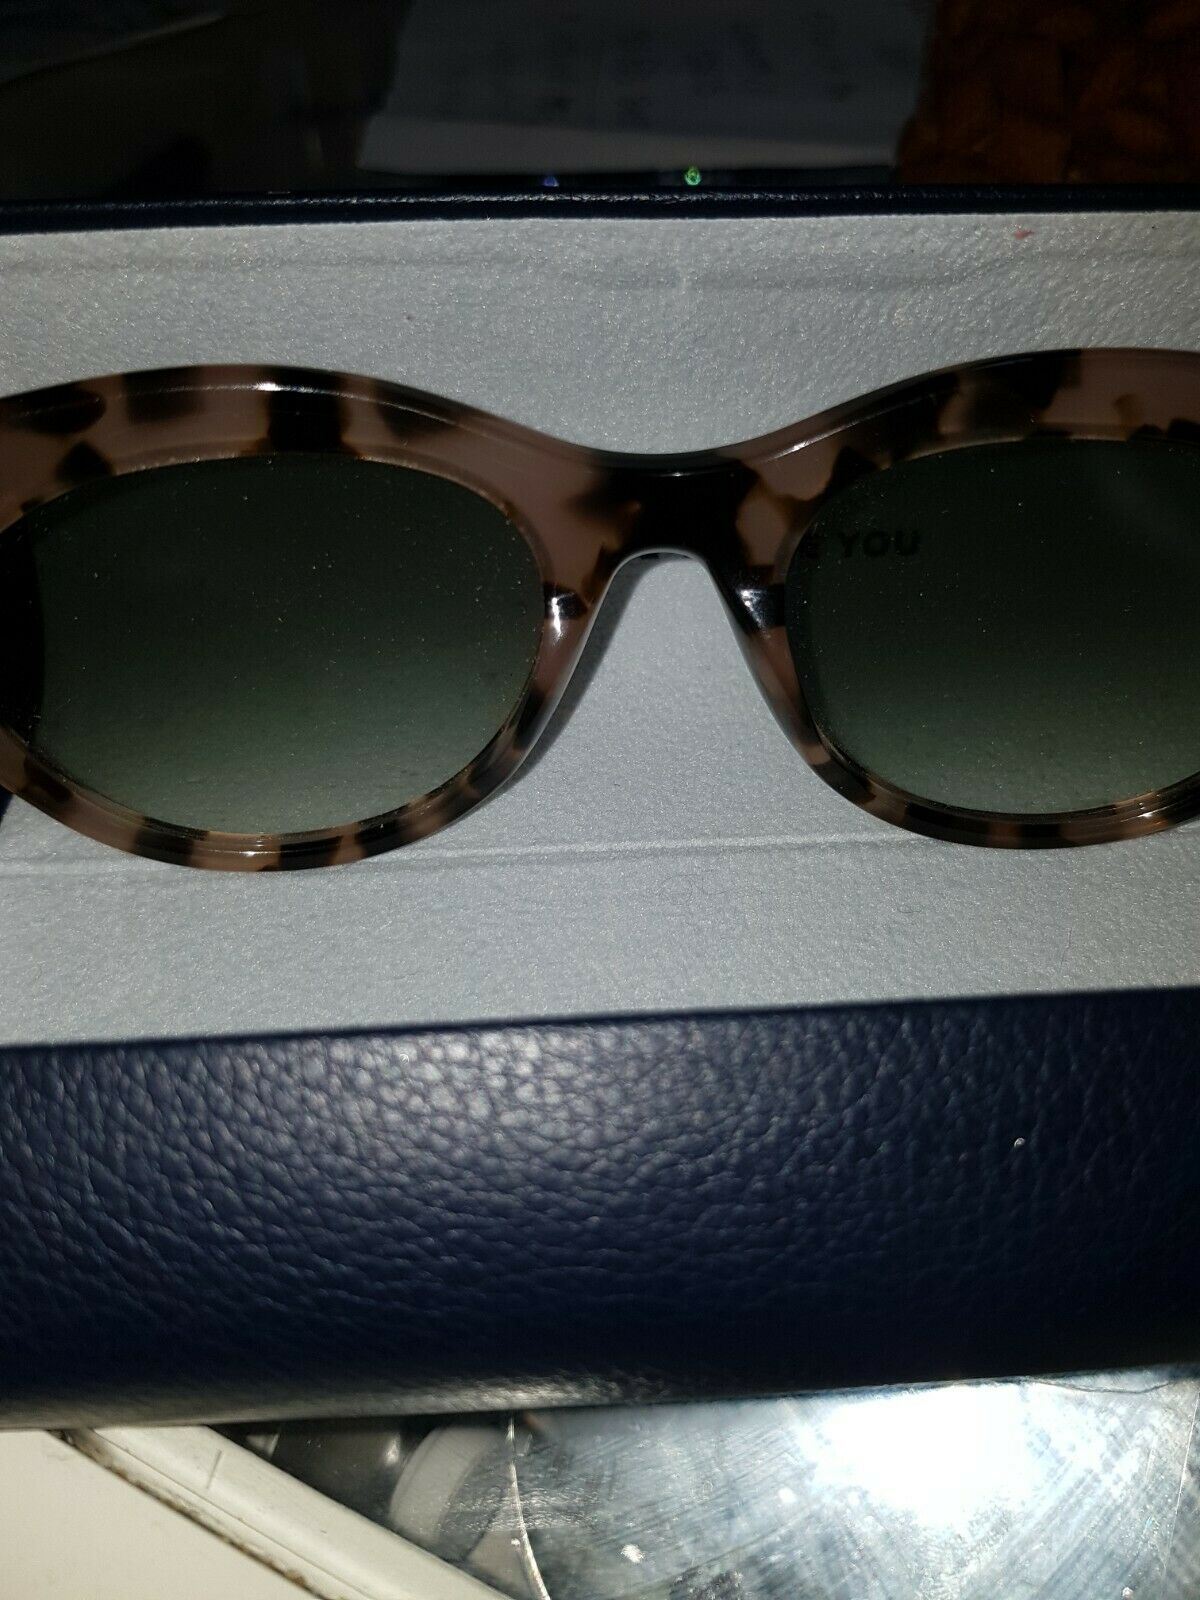 Warby parker sunglasses - image 3